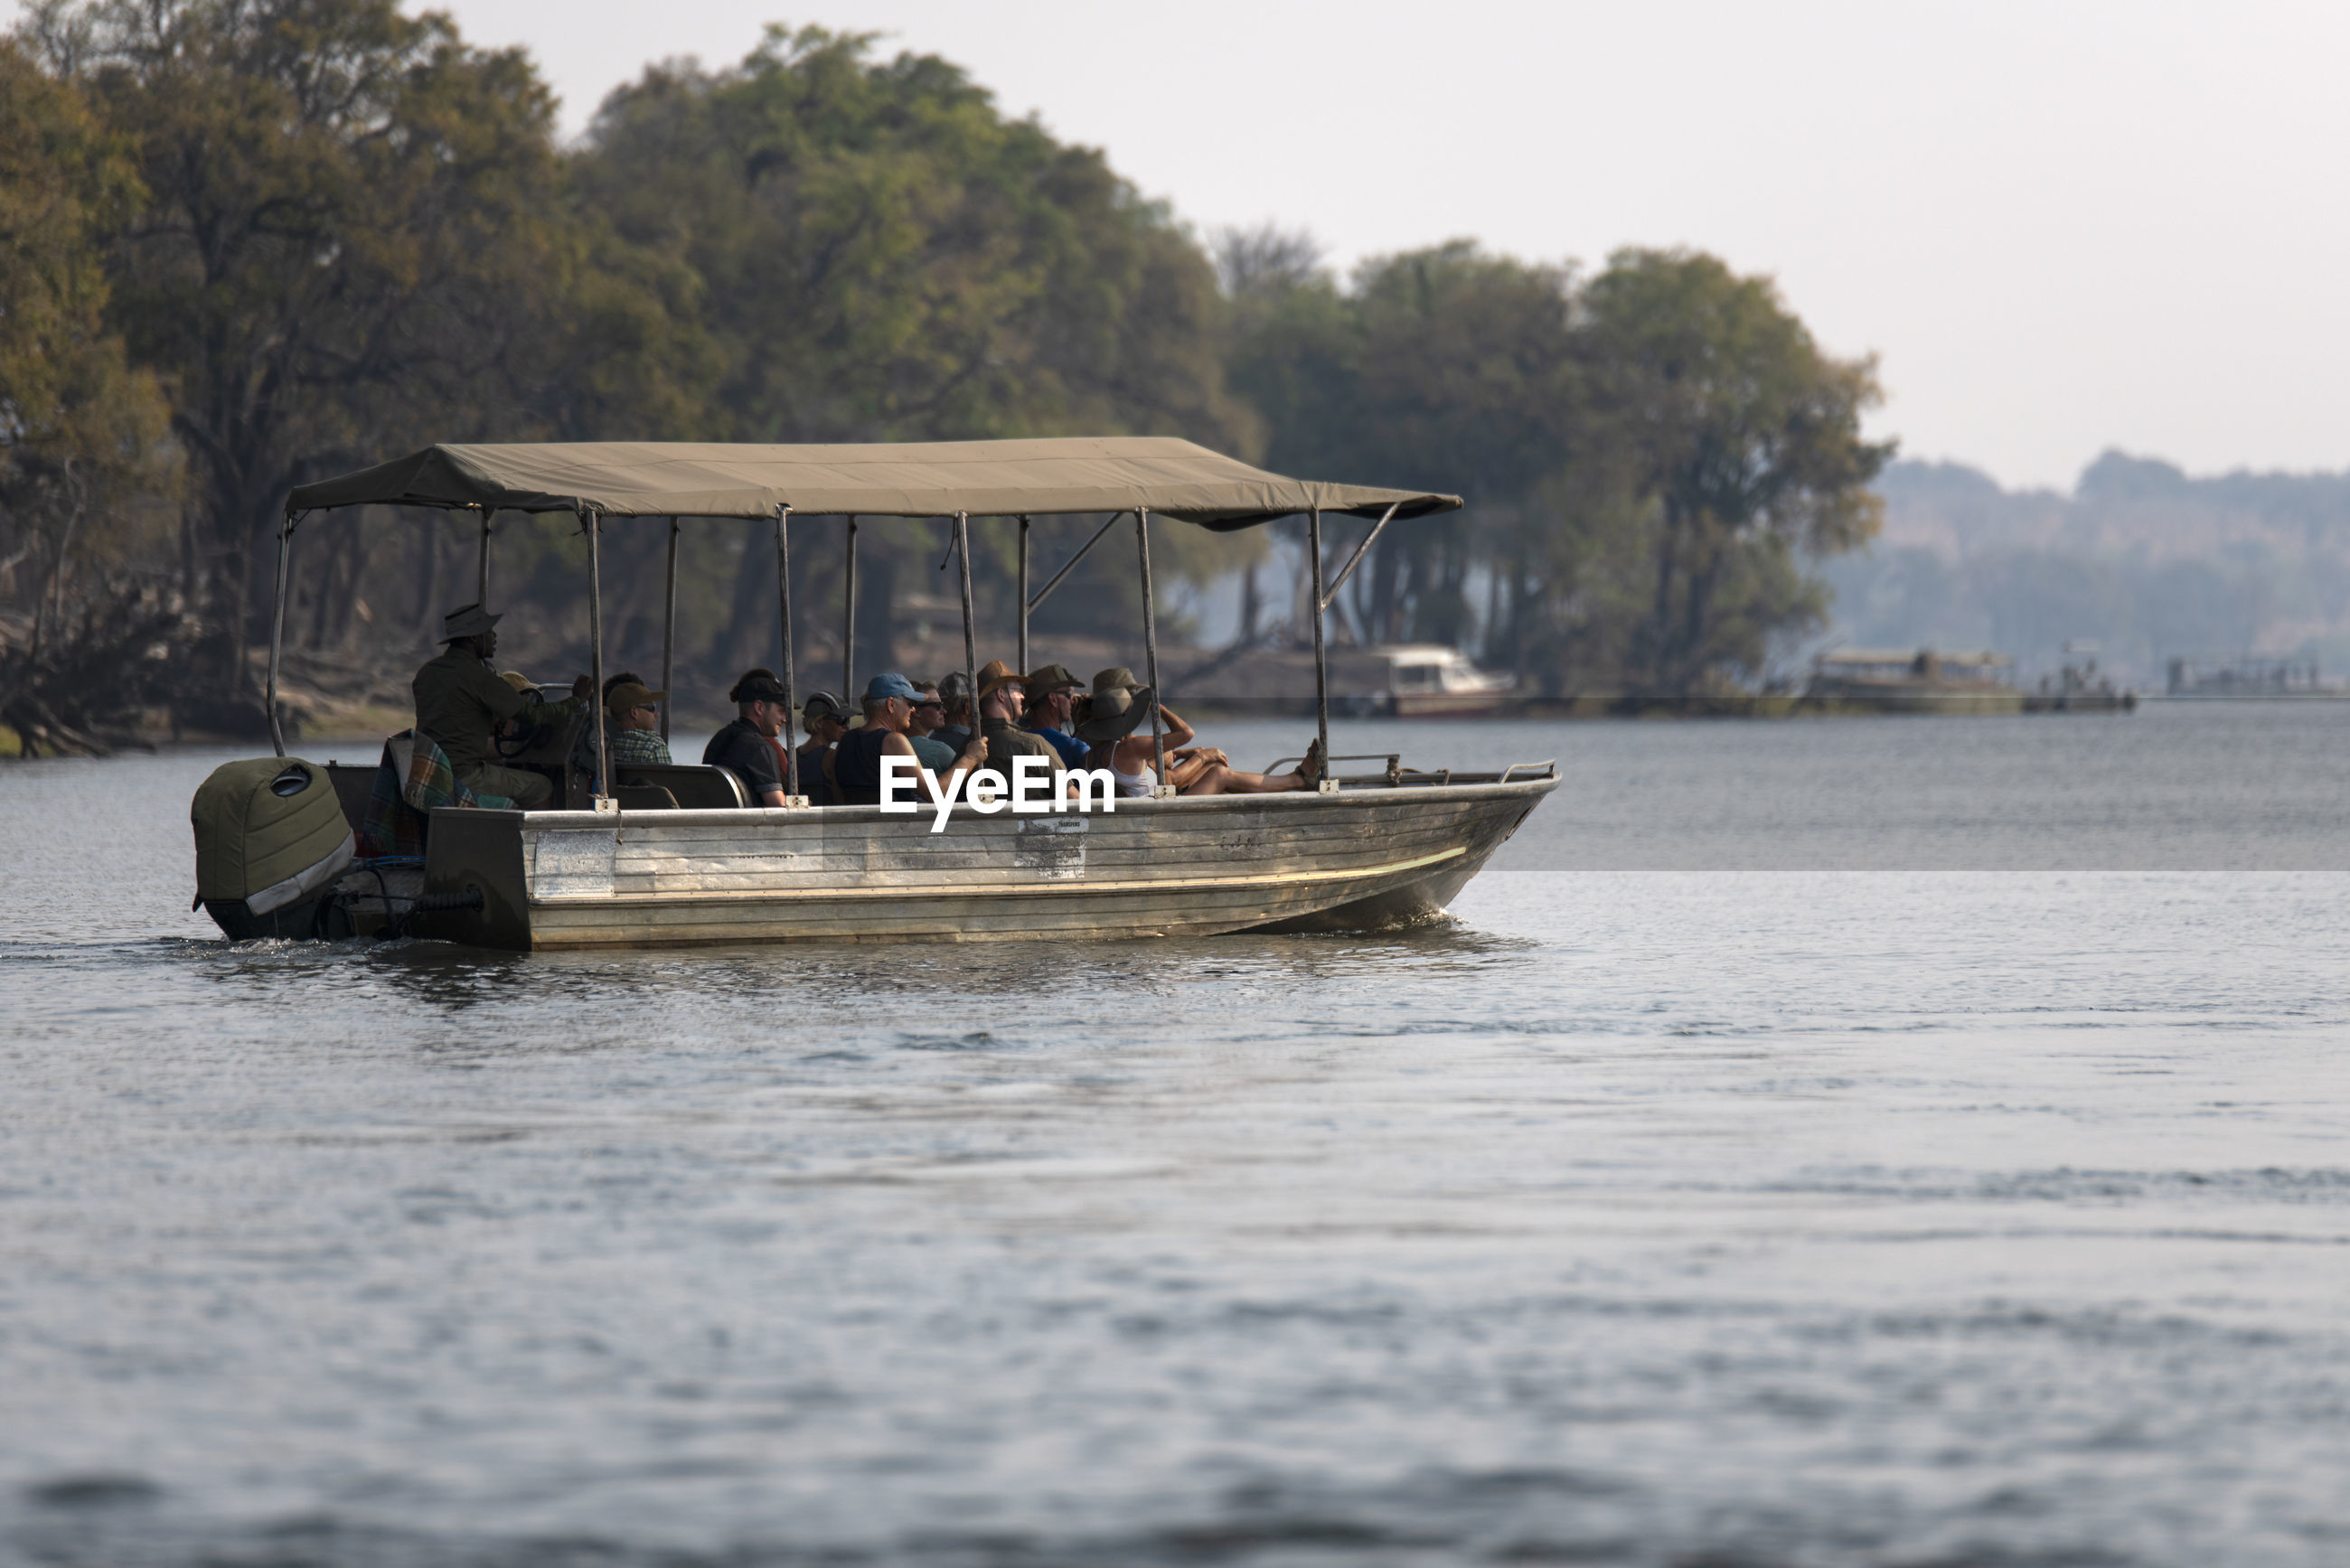 People sitting in boat in river against trees